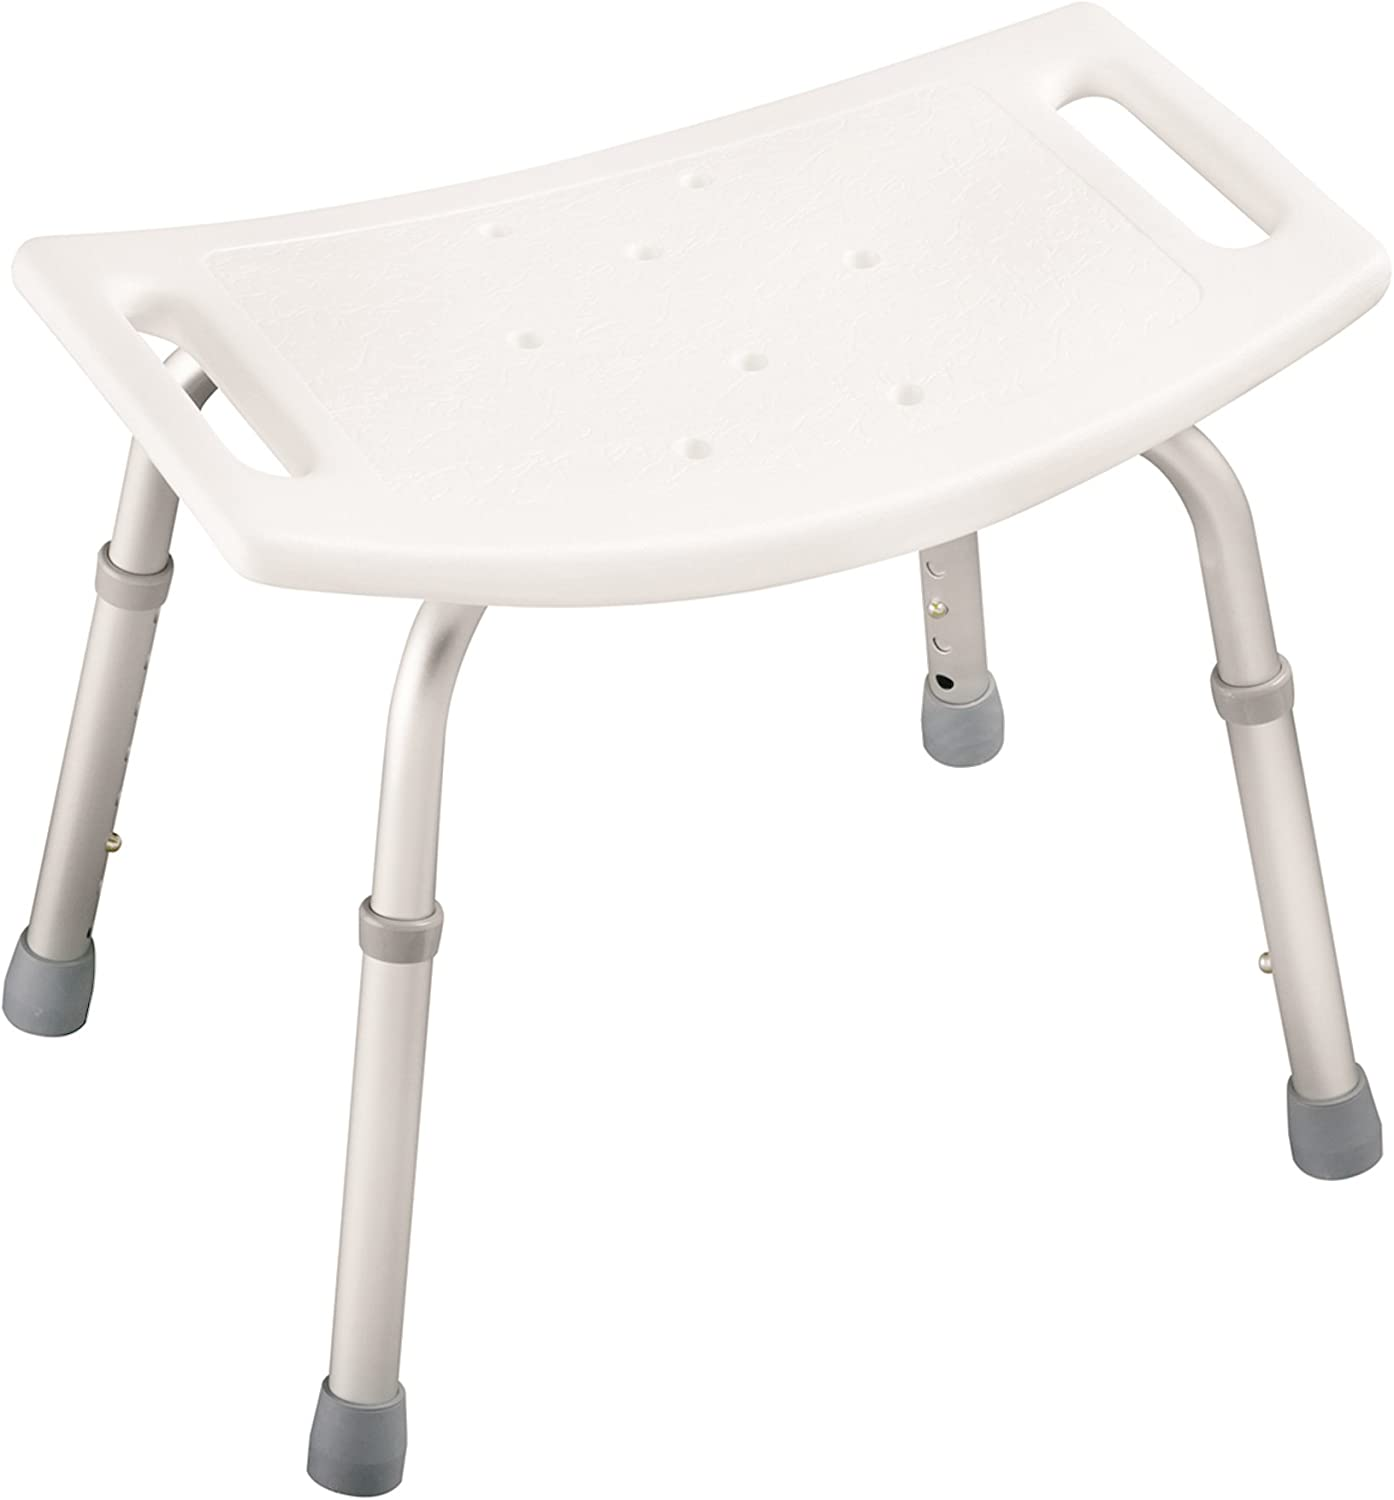 Delta DF596 Bath Safety Adjustable Tub and Shower Seat, White